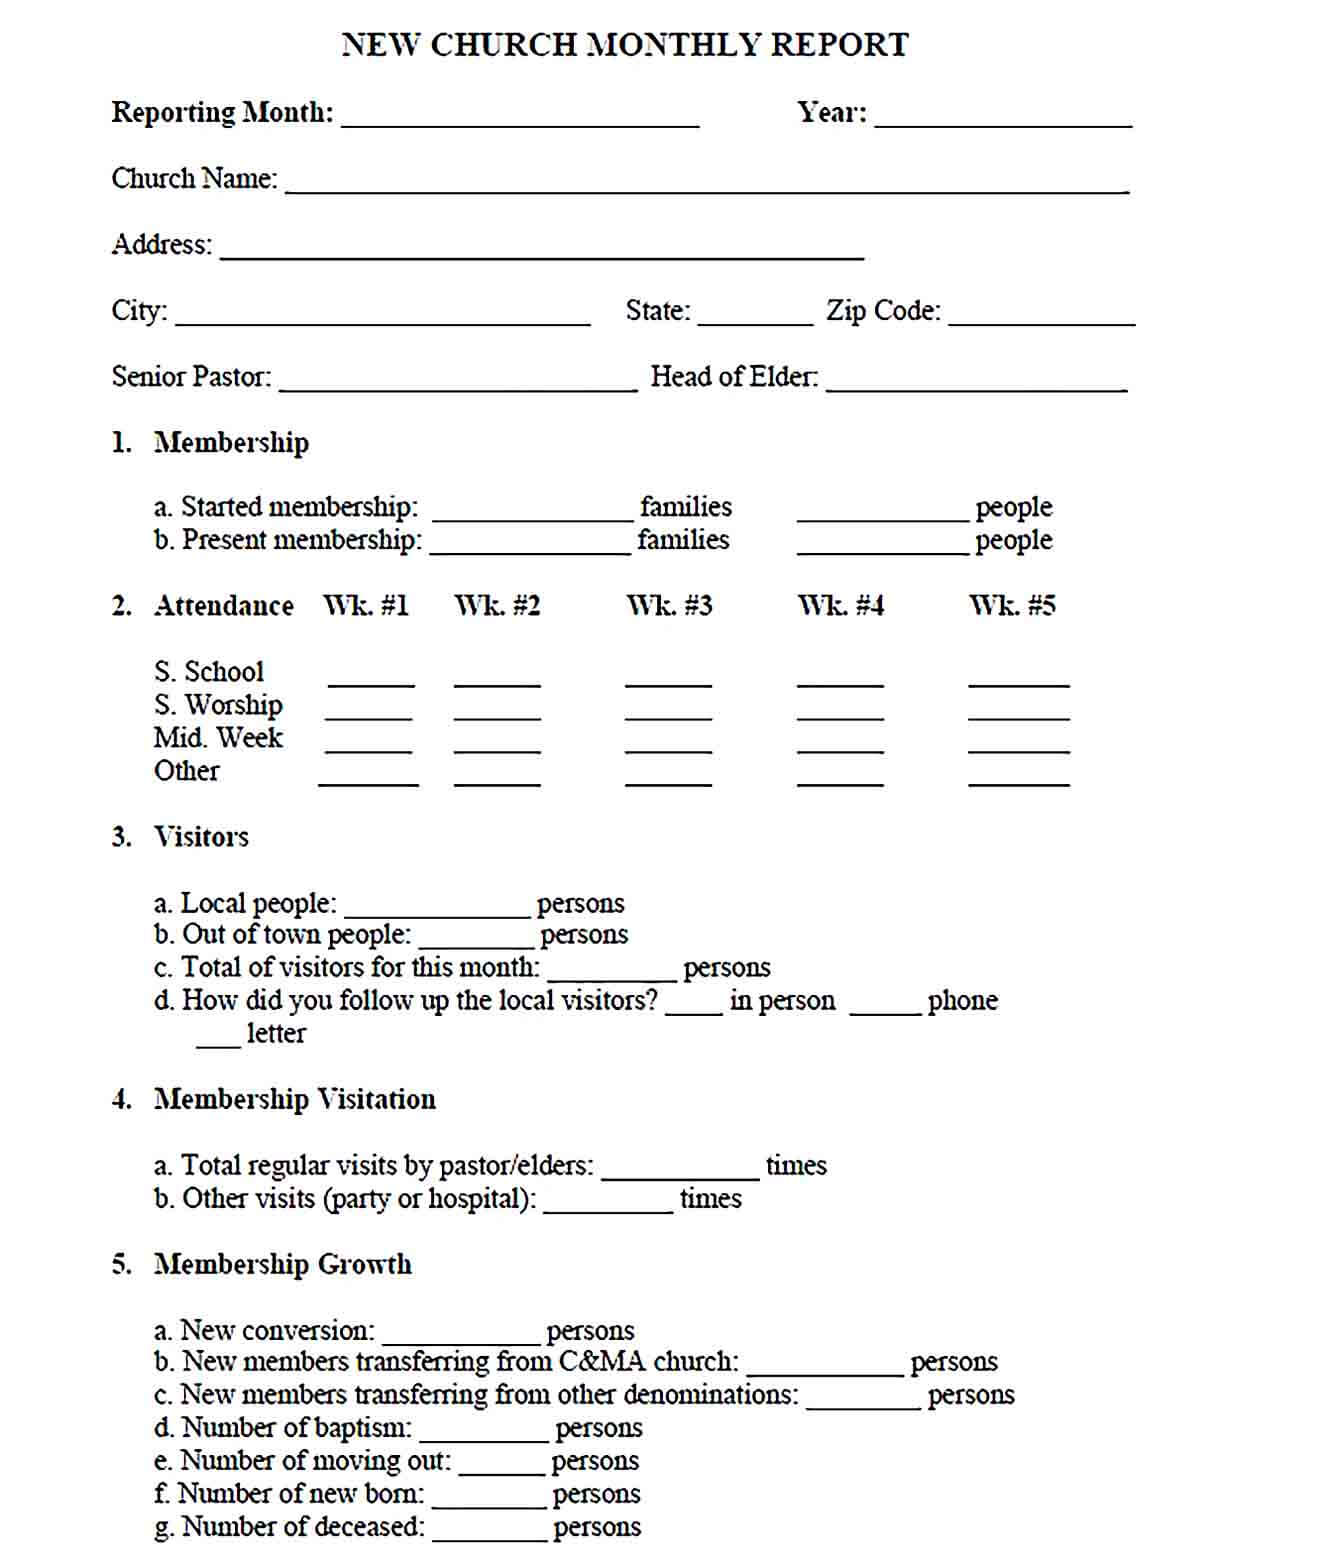 Sample church financial report template